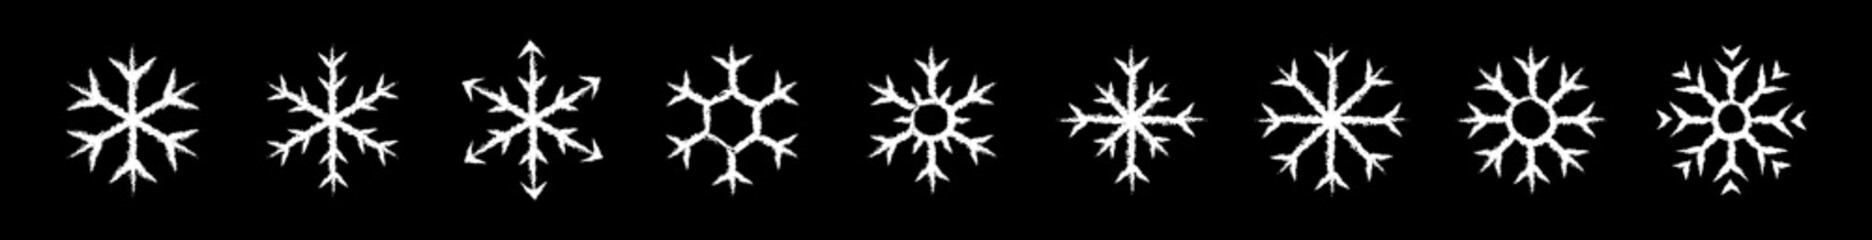 Set of icy snowflakes symbol vector illustration. White chalk sketch frozen snowflake isolated on blackboard for new year celebration snow decoration ornament or christmas festive frost flakes design